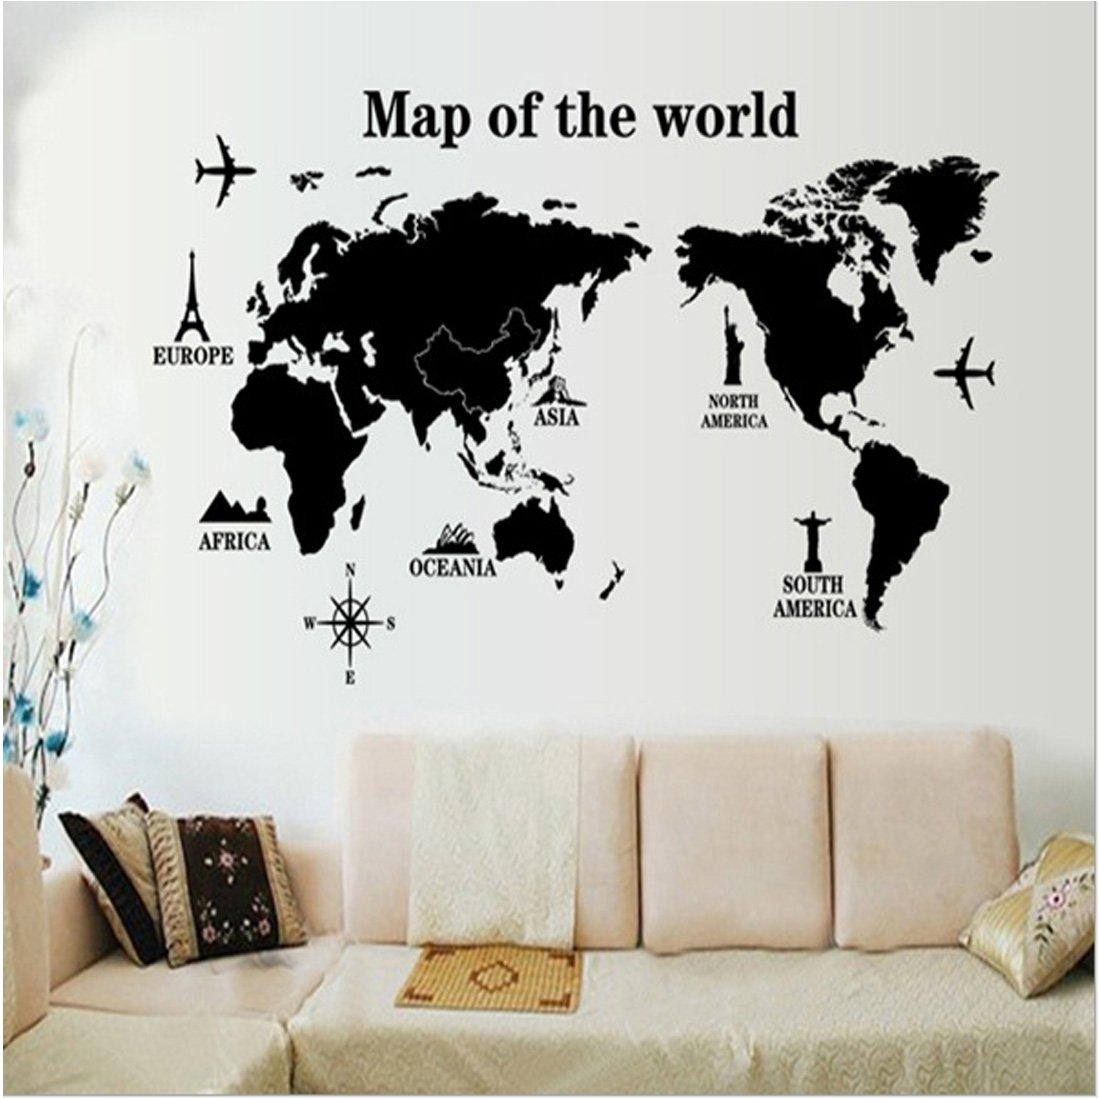 3d World Map Wall Decals Stickers Home Living Room Decoration Diy Throughout Wall Art Stickers World Map (View 11 of 20)